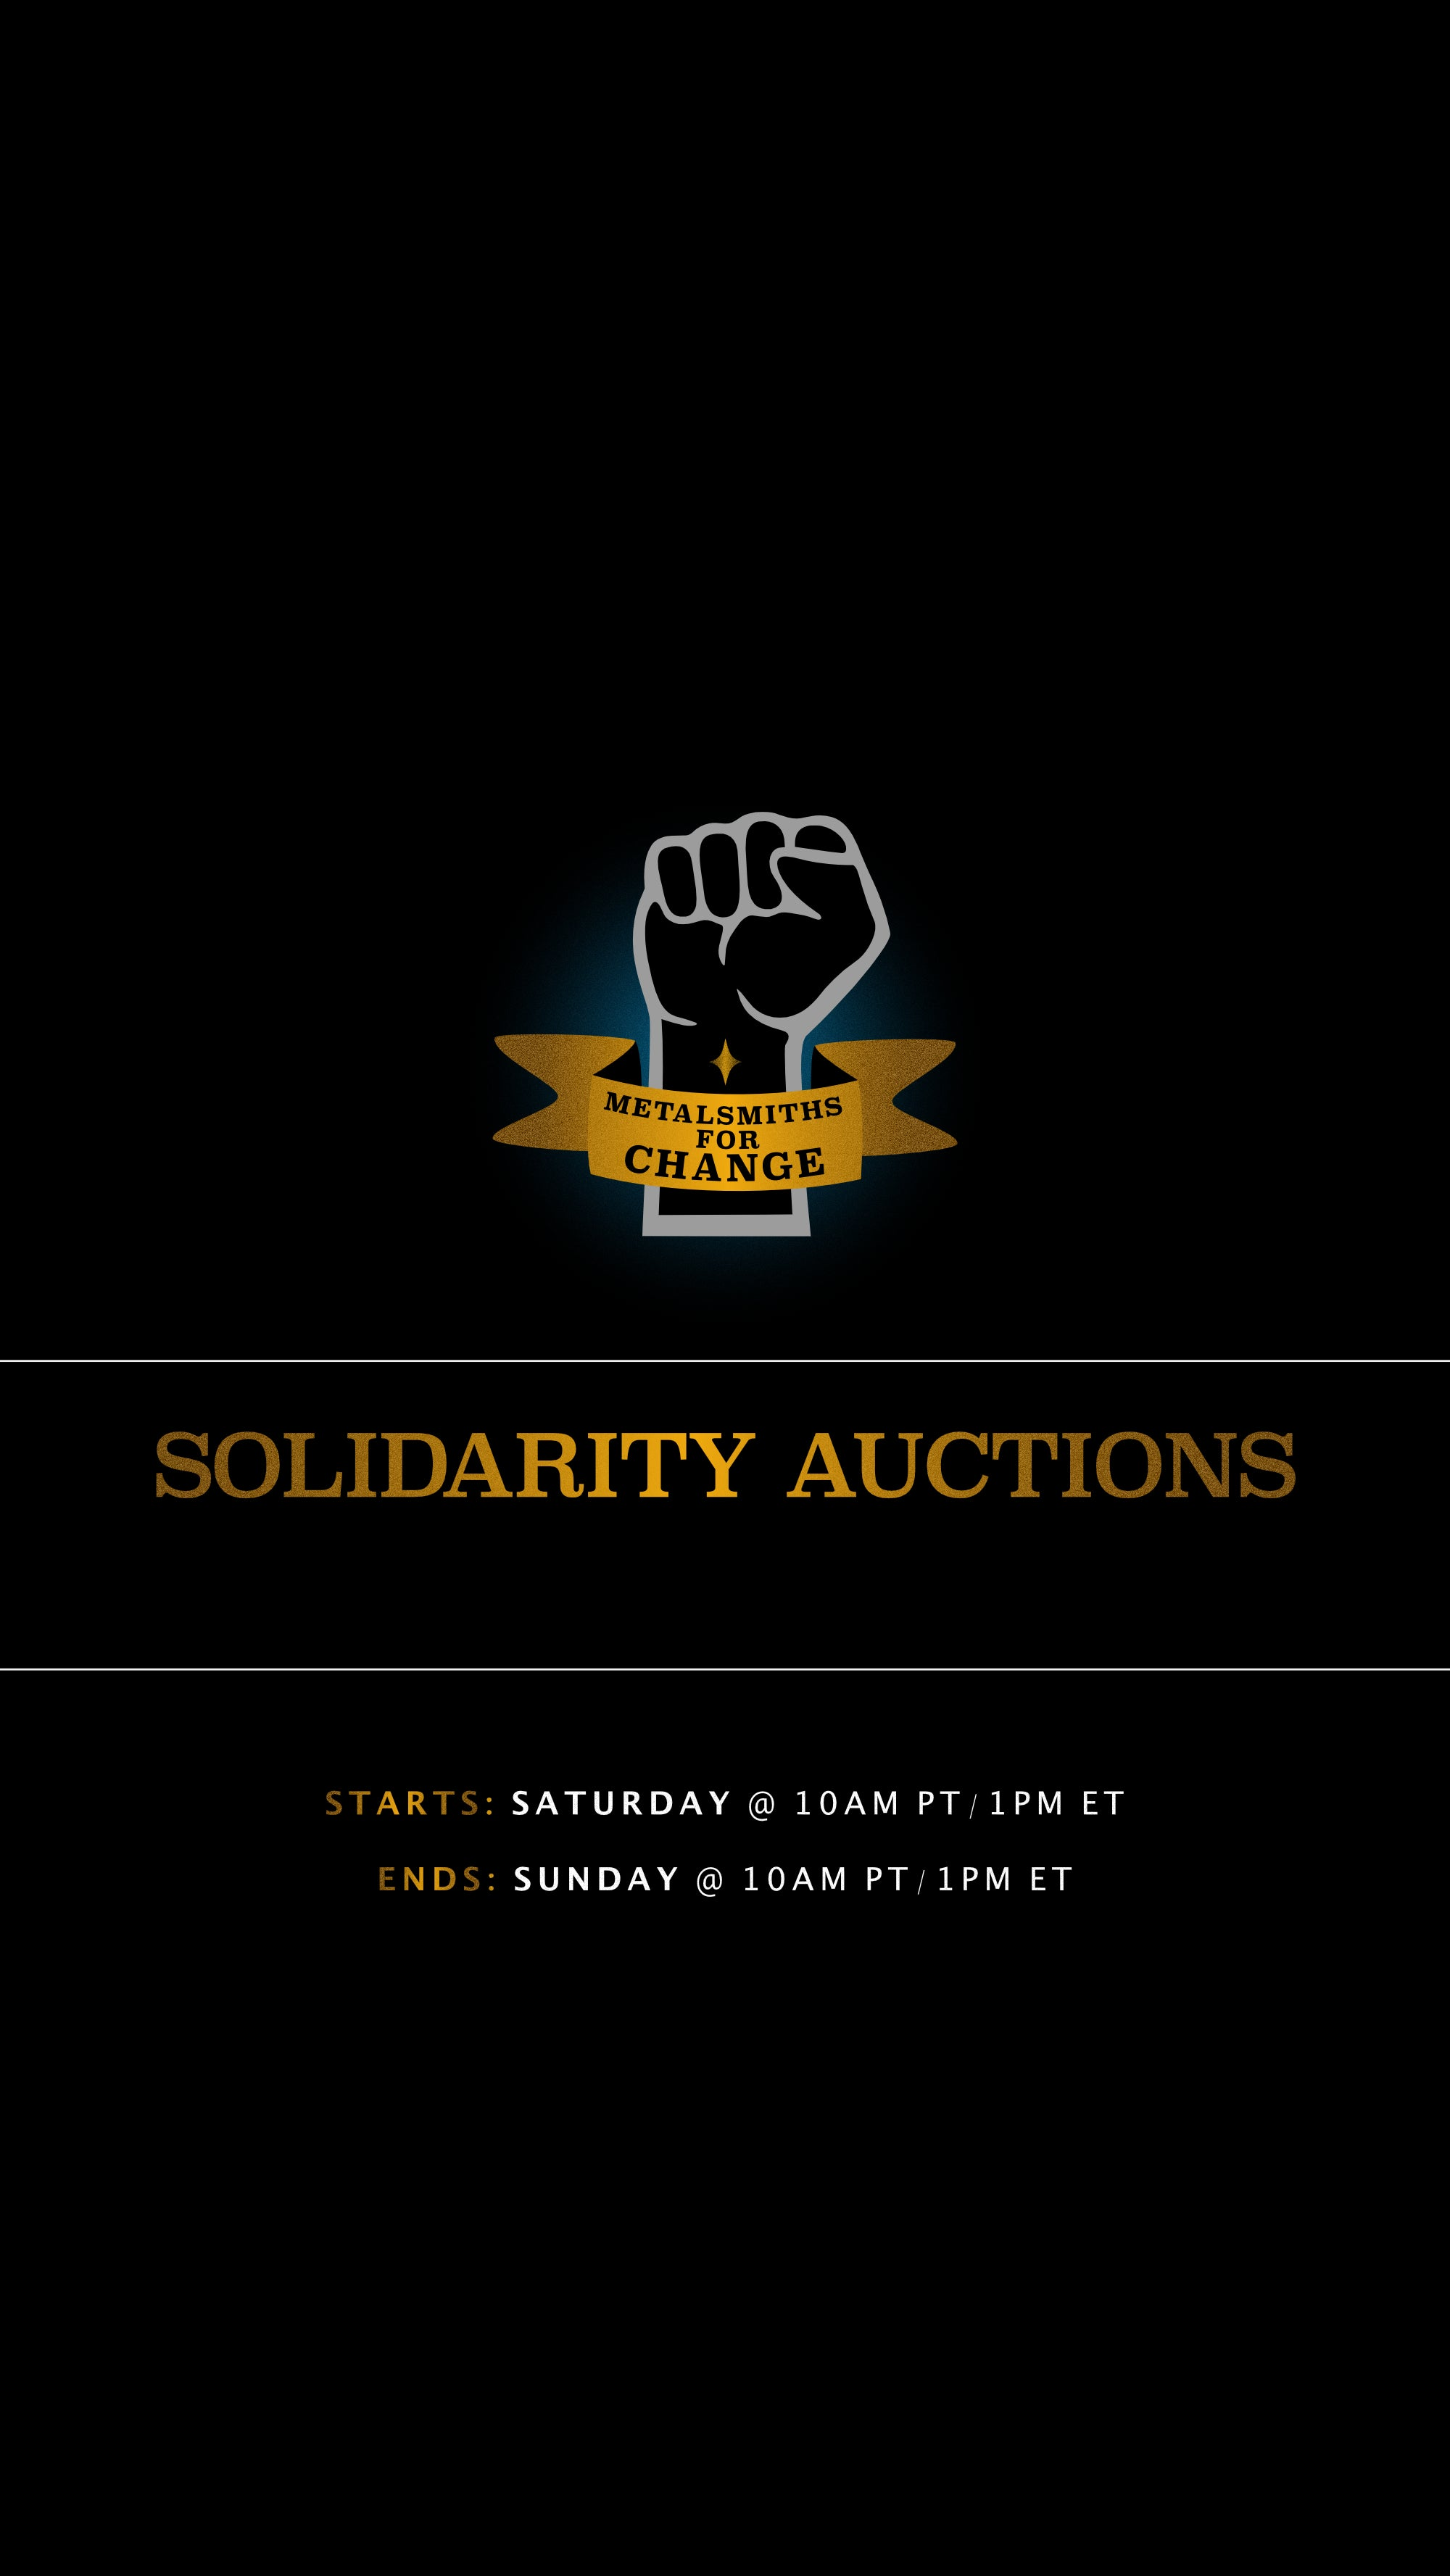 Metalsmiths for Change 24-hr Solidarity Auctions. Auctions start Sat. at 10am PT/1pm ET and end Sunday at 10am PT/1pm ET. 